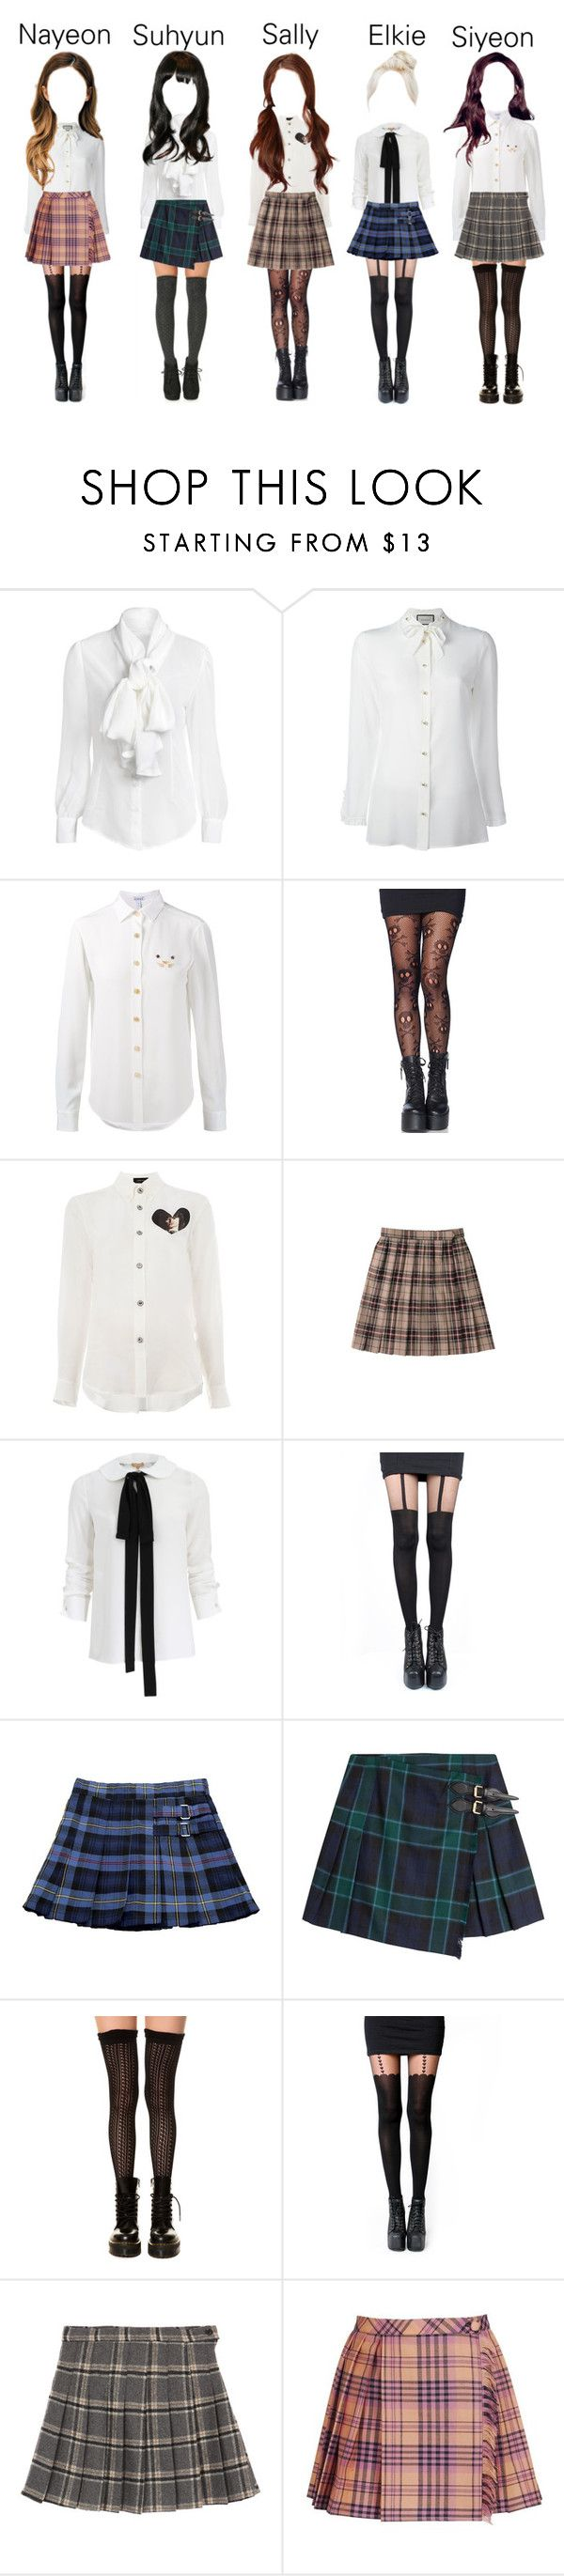 """""""Delicate - Looking for a Company"""" by delicate-official ❤ liked on Polyvore featuring Gucci, Loewe, Leg Avenue, Undercover, Michael Kors, Pretty Polly, French Toast, Burberry, K. Bell and Pamela Mann"""